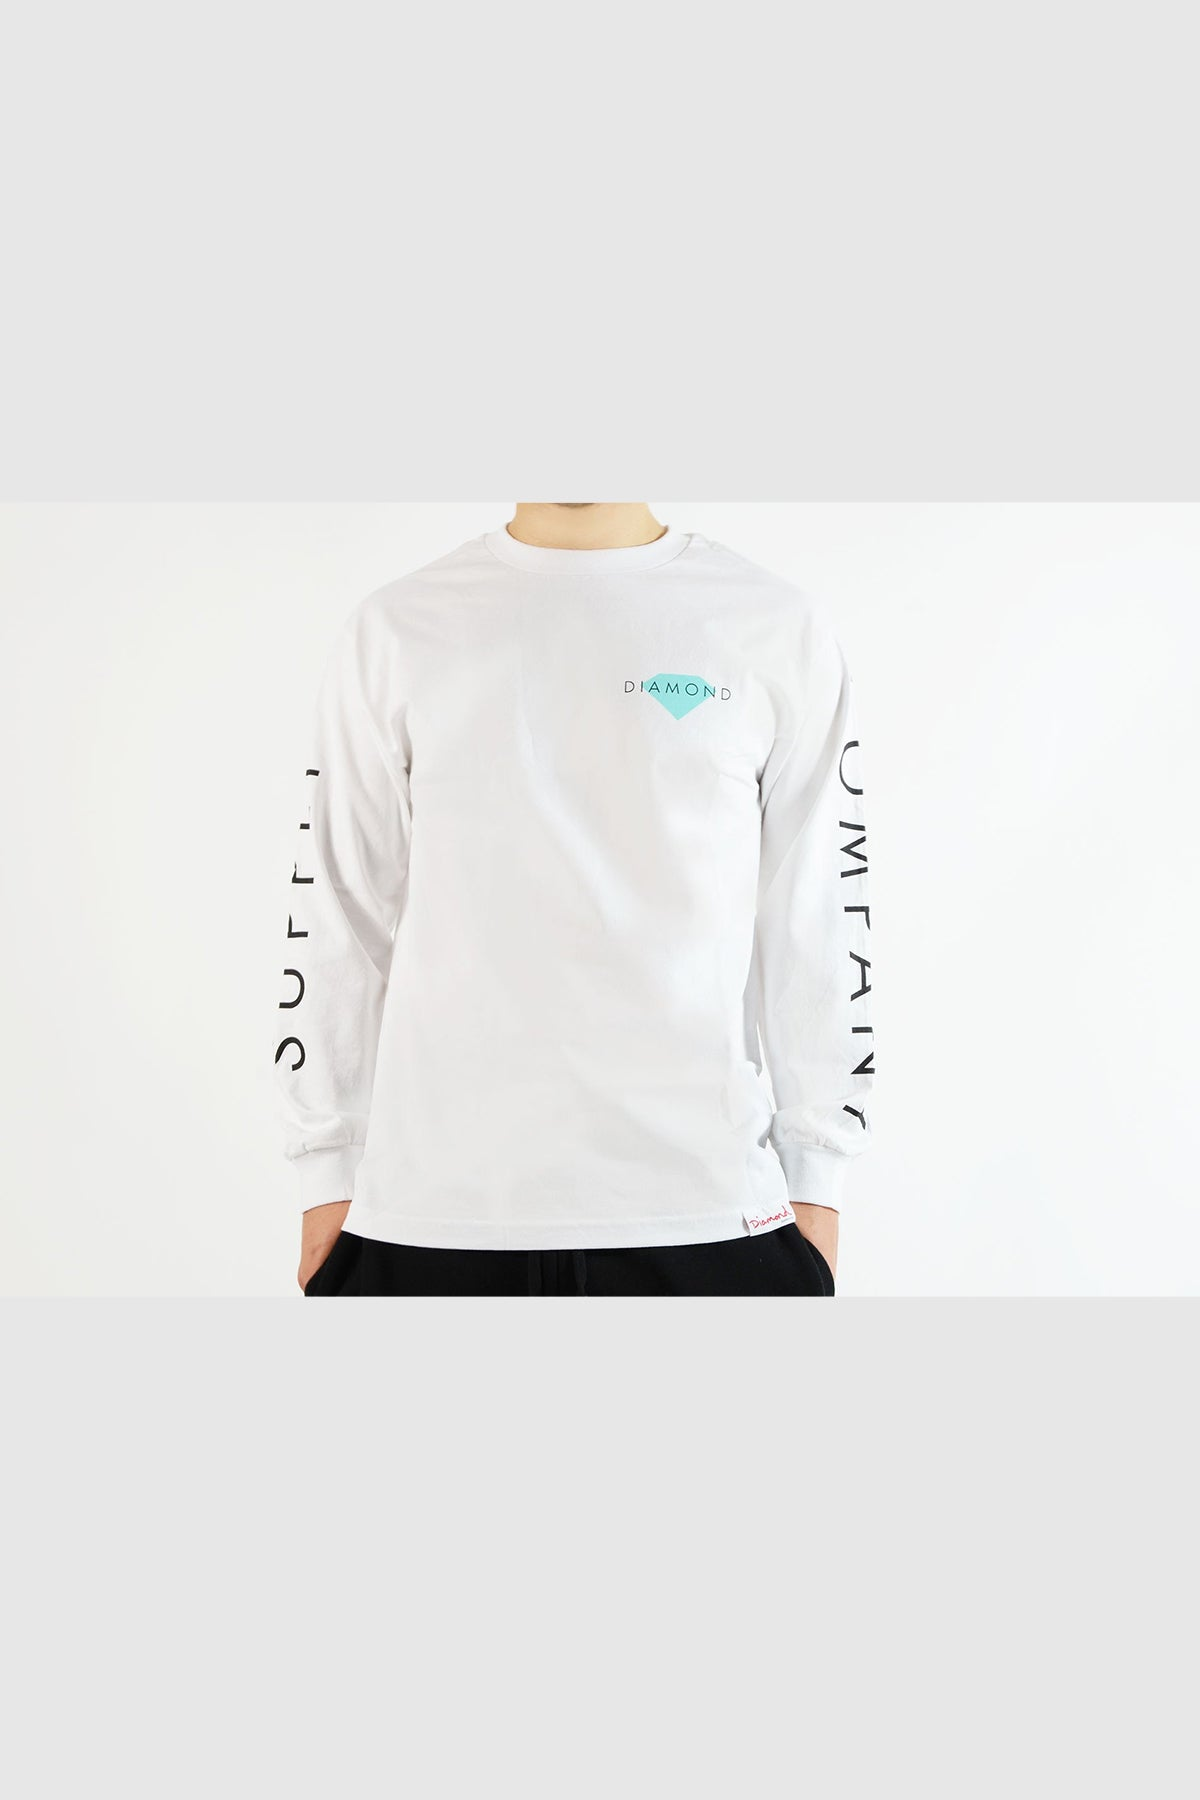 Diamond - Solid L/S Tee (White)